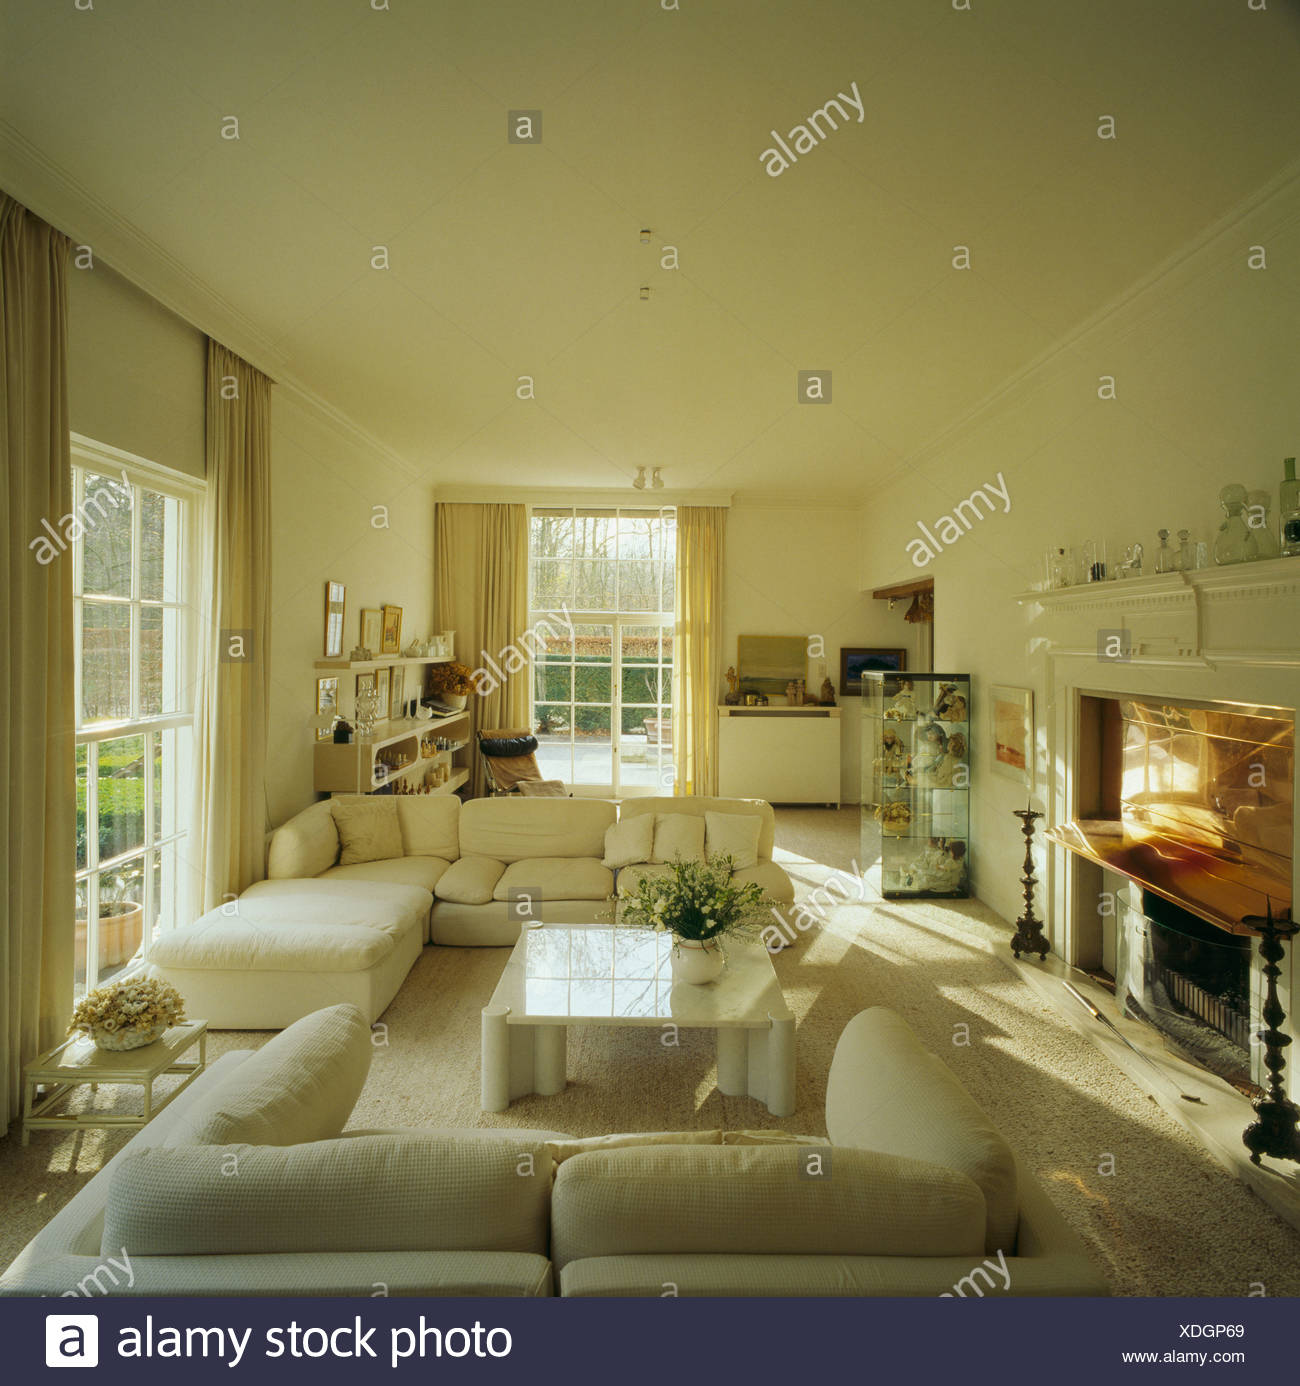 Neutral Livingroom With Modern Furniture In Swedish Country House   Stock  Image